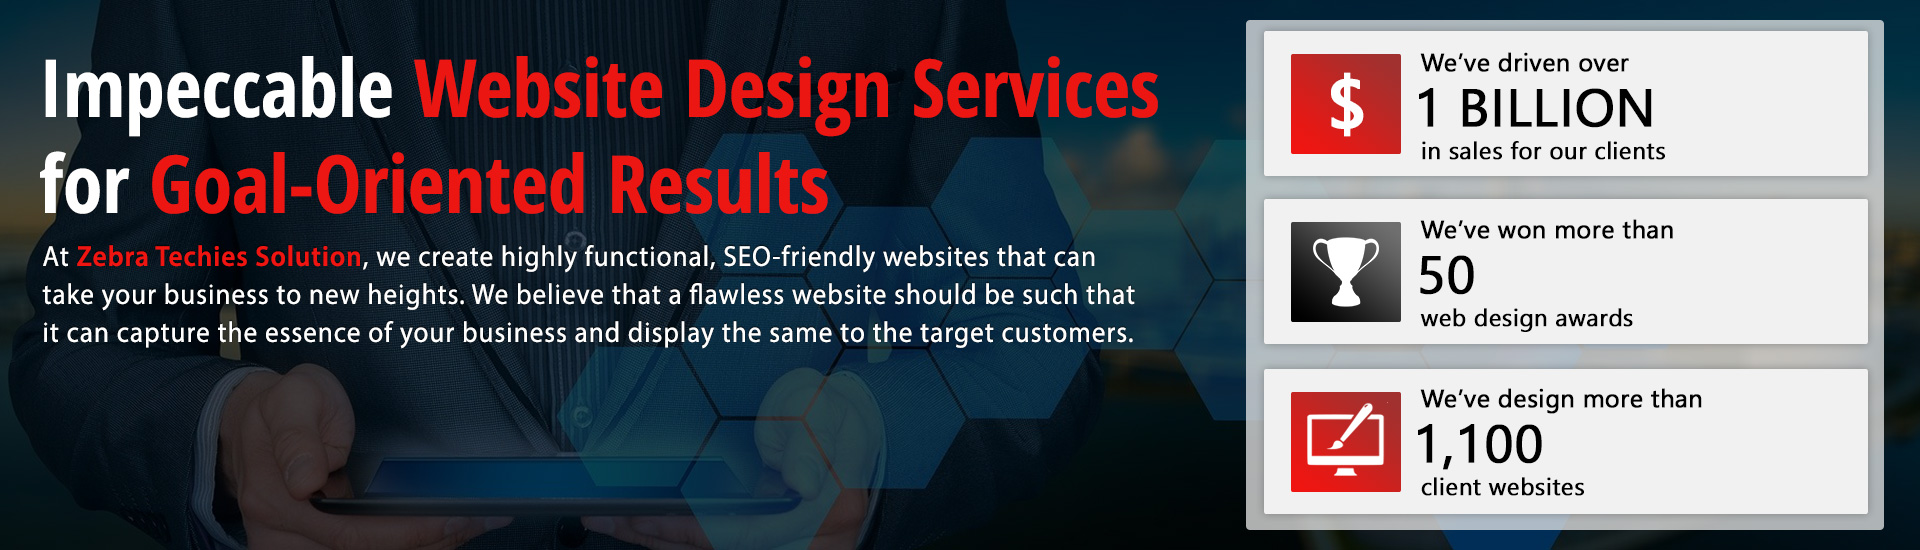 Web Design Services in India